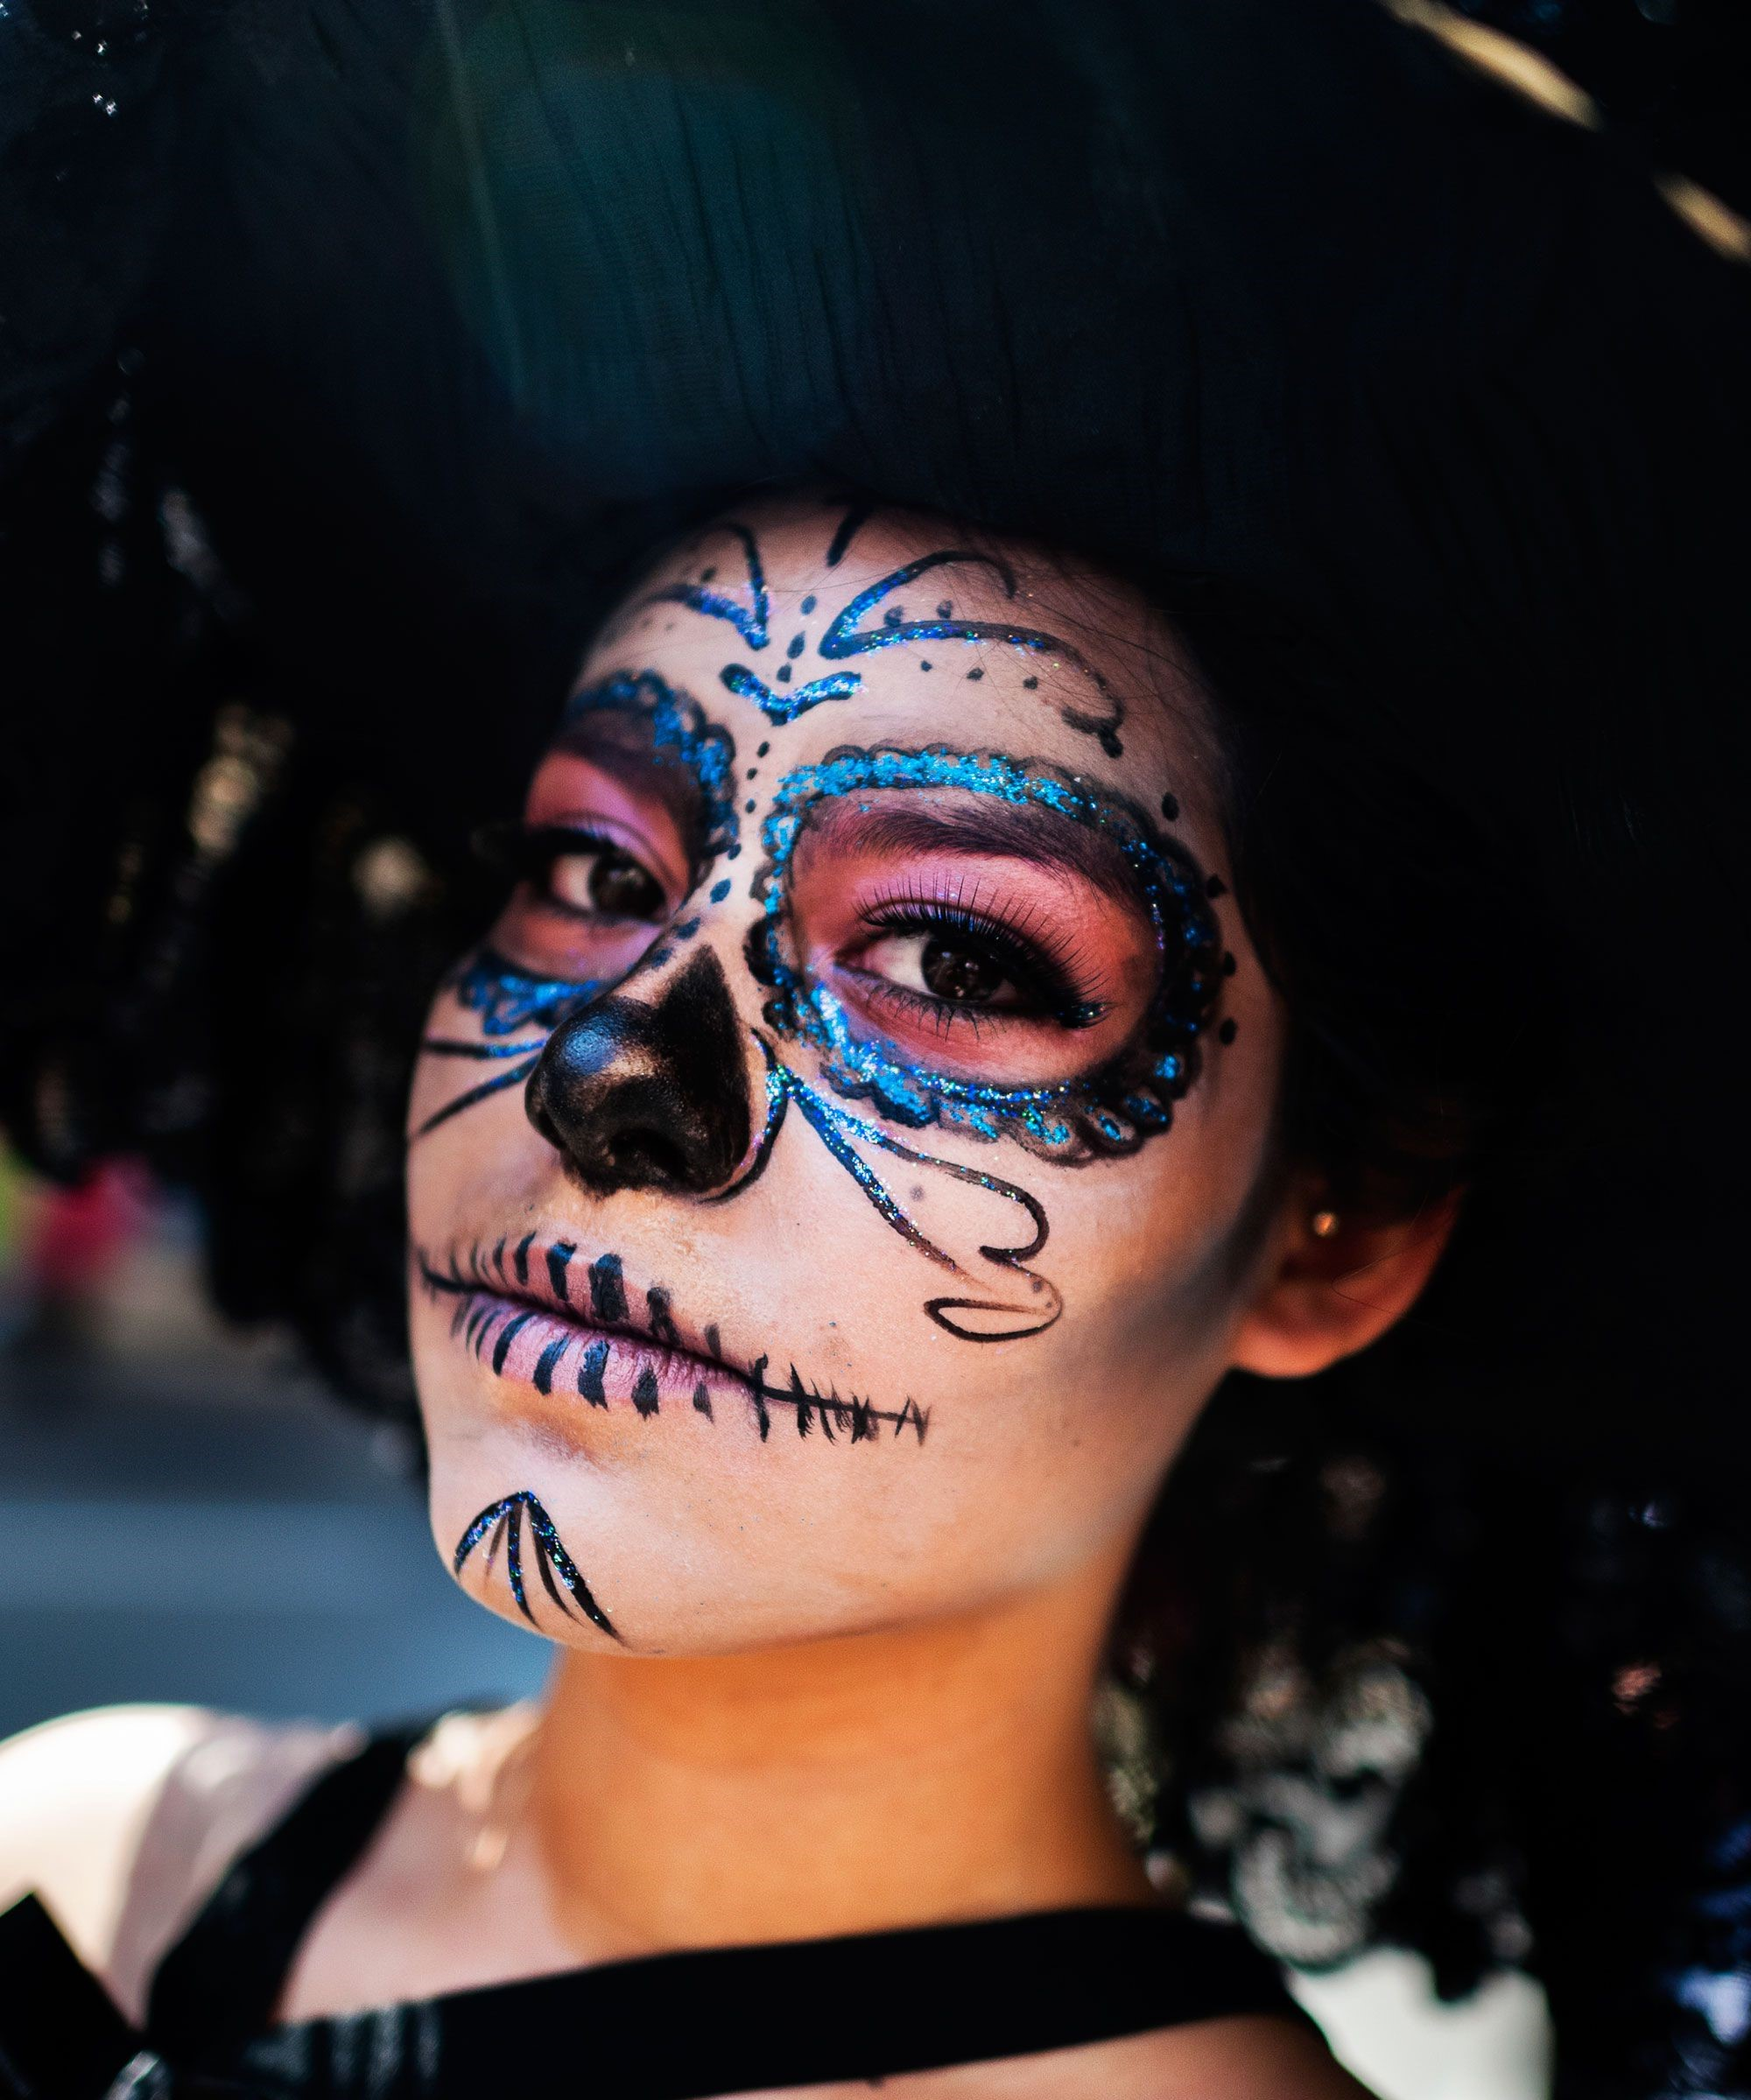 The Calavera Catrina is often called the Great Lady of Death of Mexico.